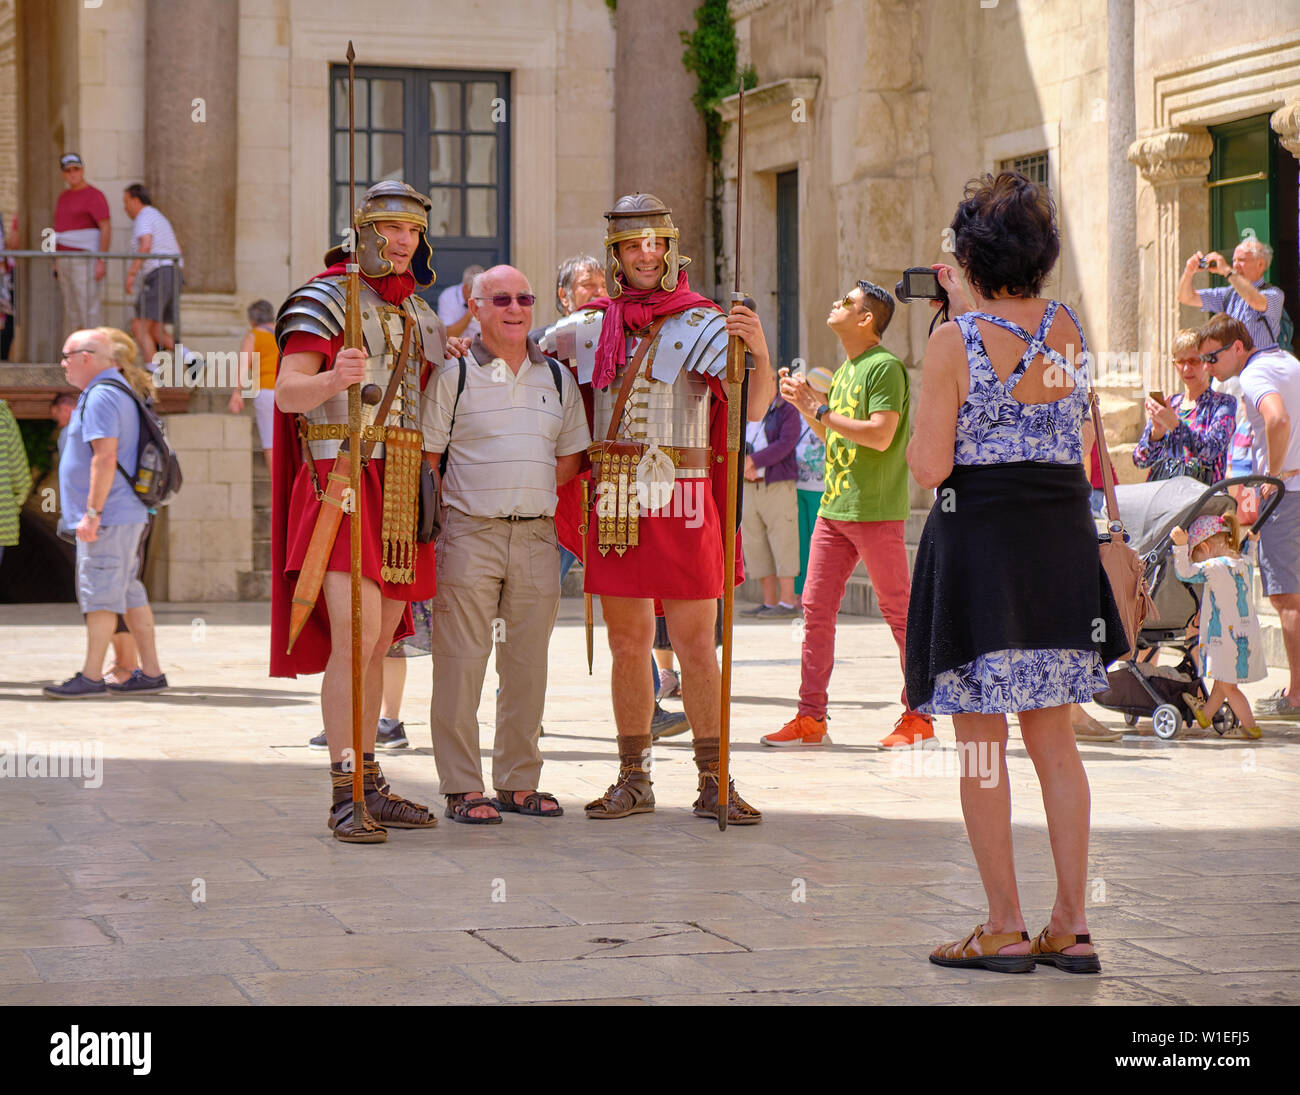 split-croatia-actors-dressed-as-roman-guards-performing-for-tourists-posing-with-male-tourist-pointing-swords-at-him-while-wife-takes-picture-W1EFJ5.jpg